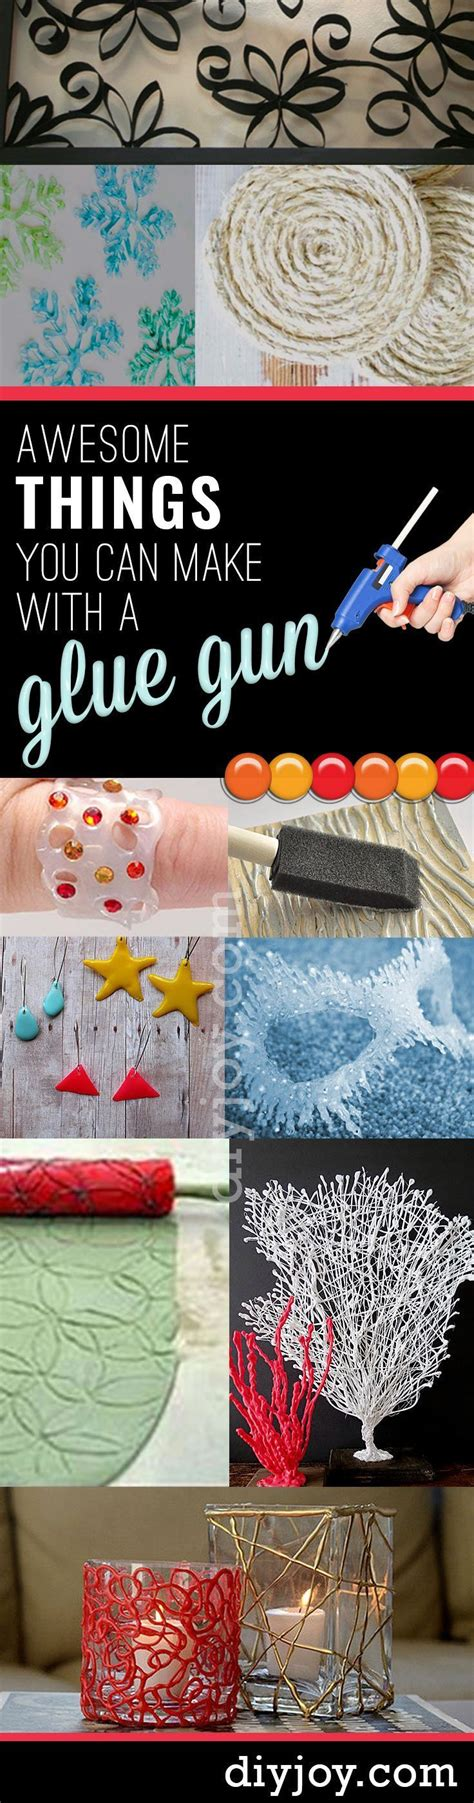 diy crafts the 25 best ideas about glue gun crafts on paint designs glue and